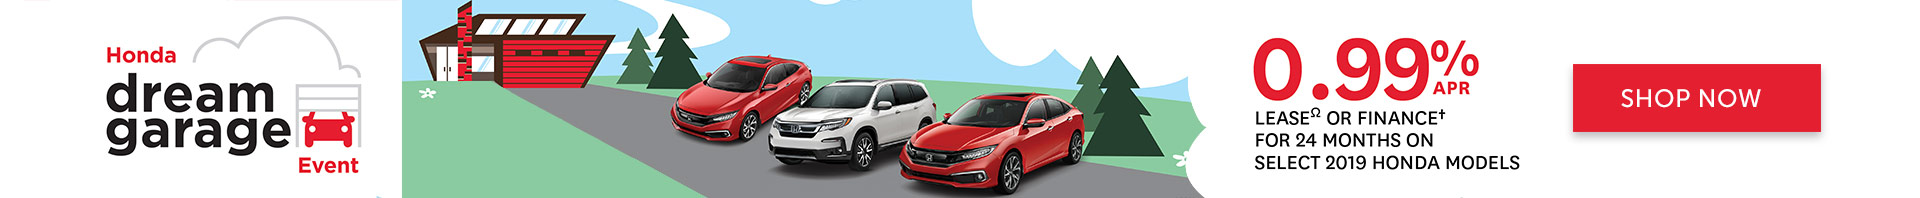 Honda March 2019 OEM Offer